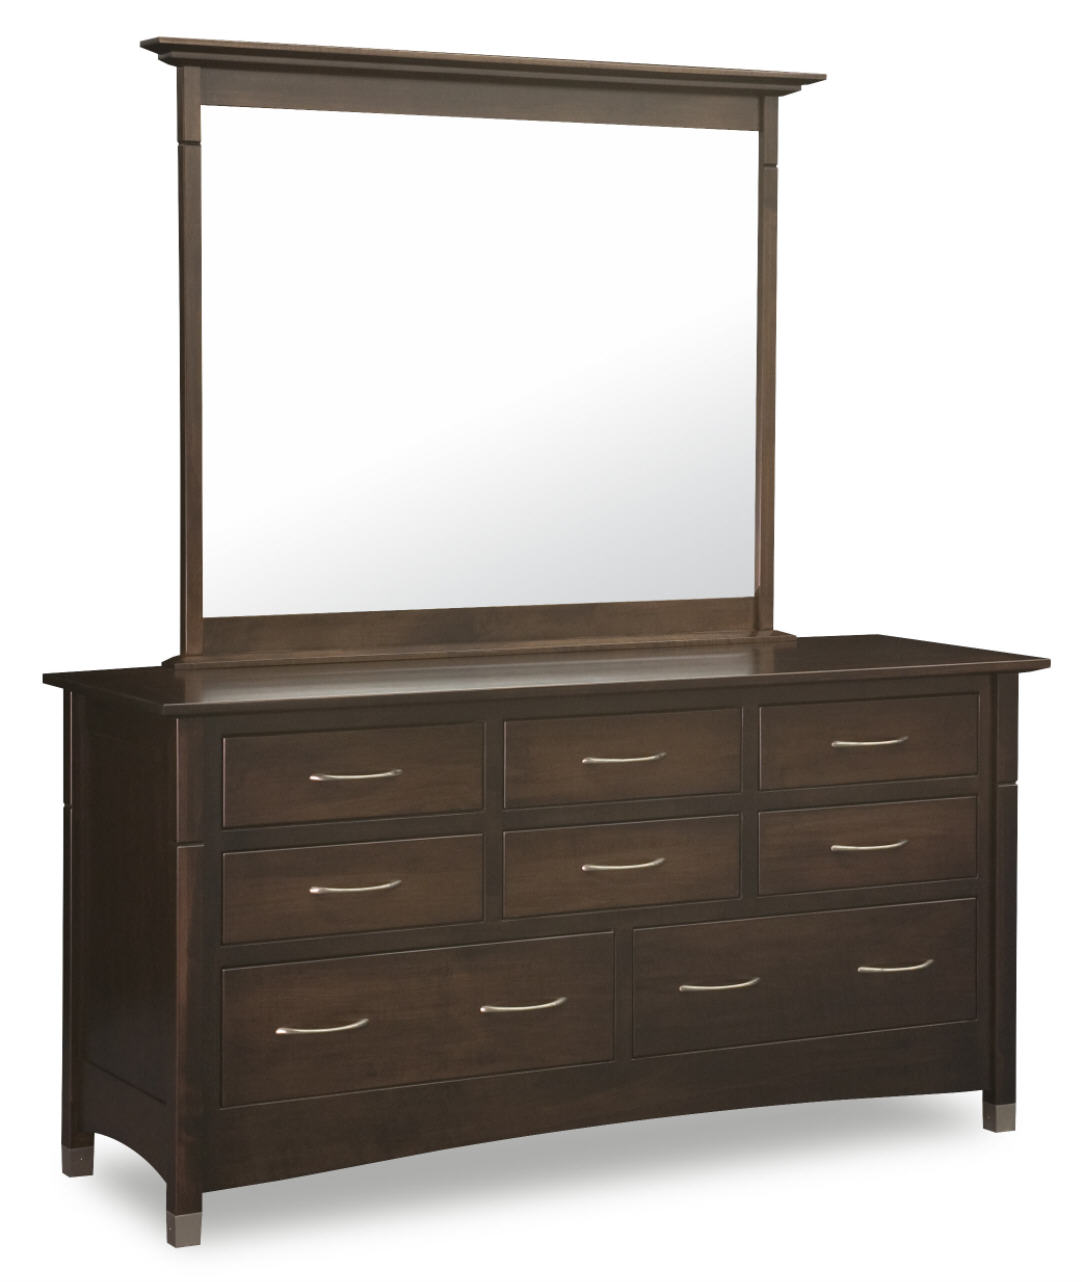 Lexington dresser 586 lx648d 129 bedroom bedroom for Stone barn furnishings